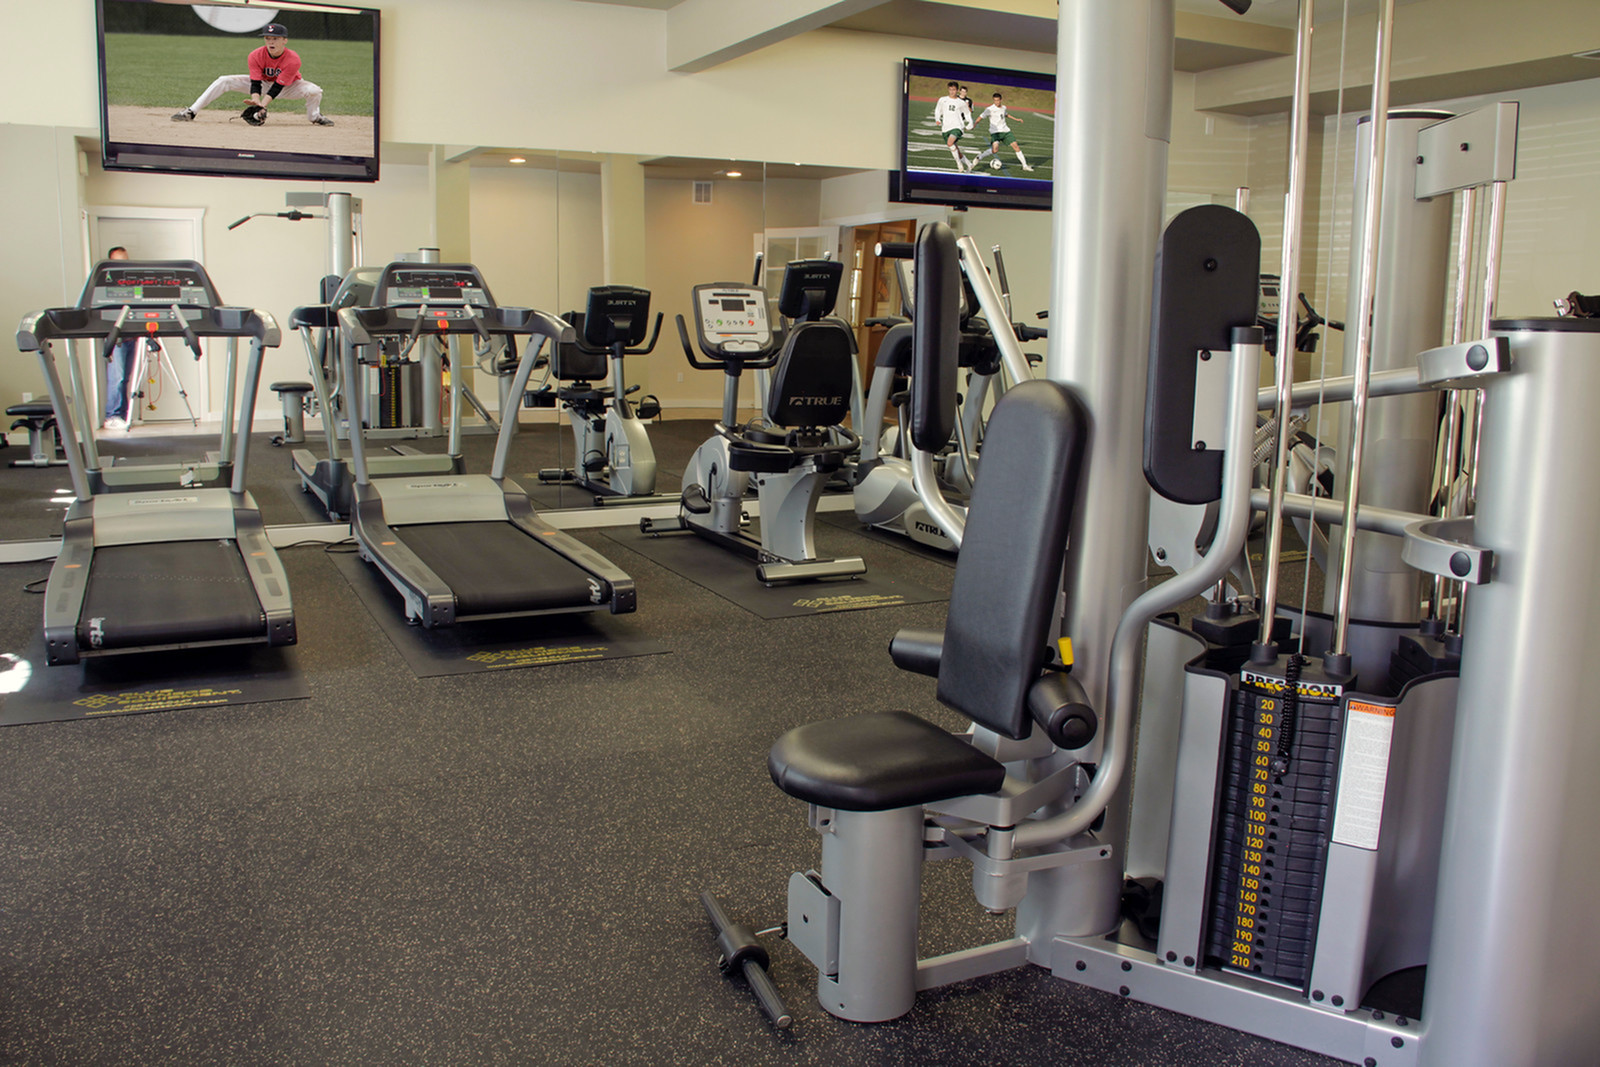 Image of Complimentary fitness center open 7 days a week for Nantucket Gate